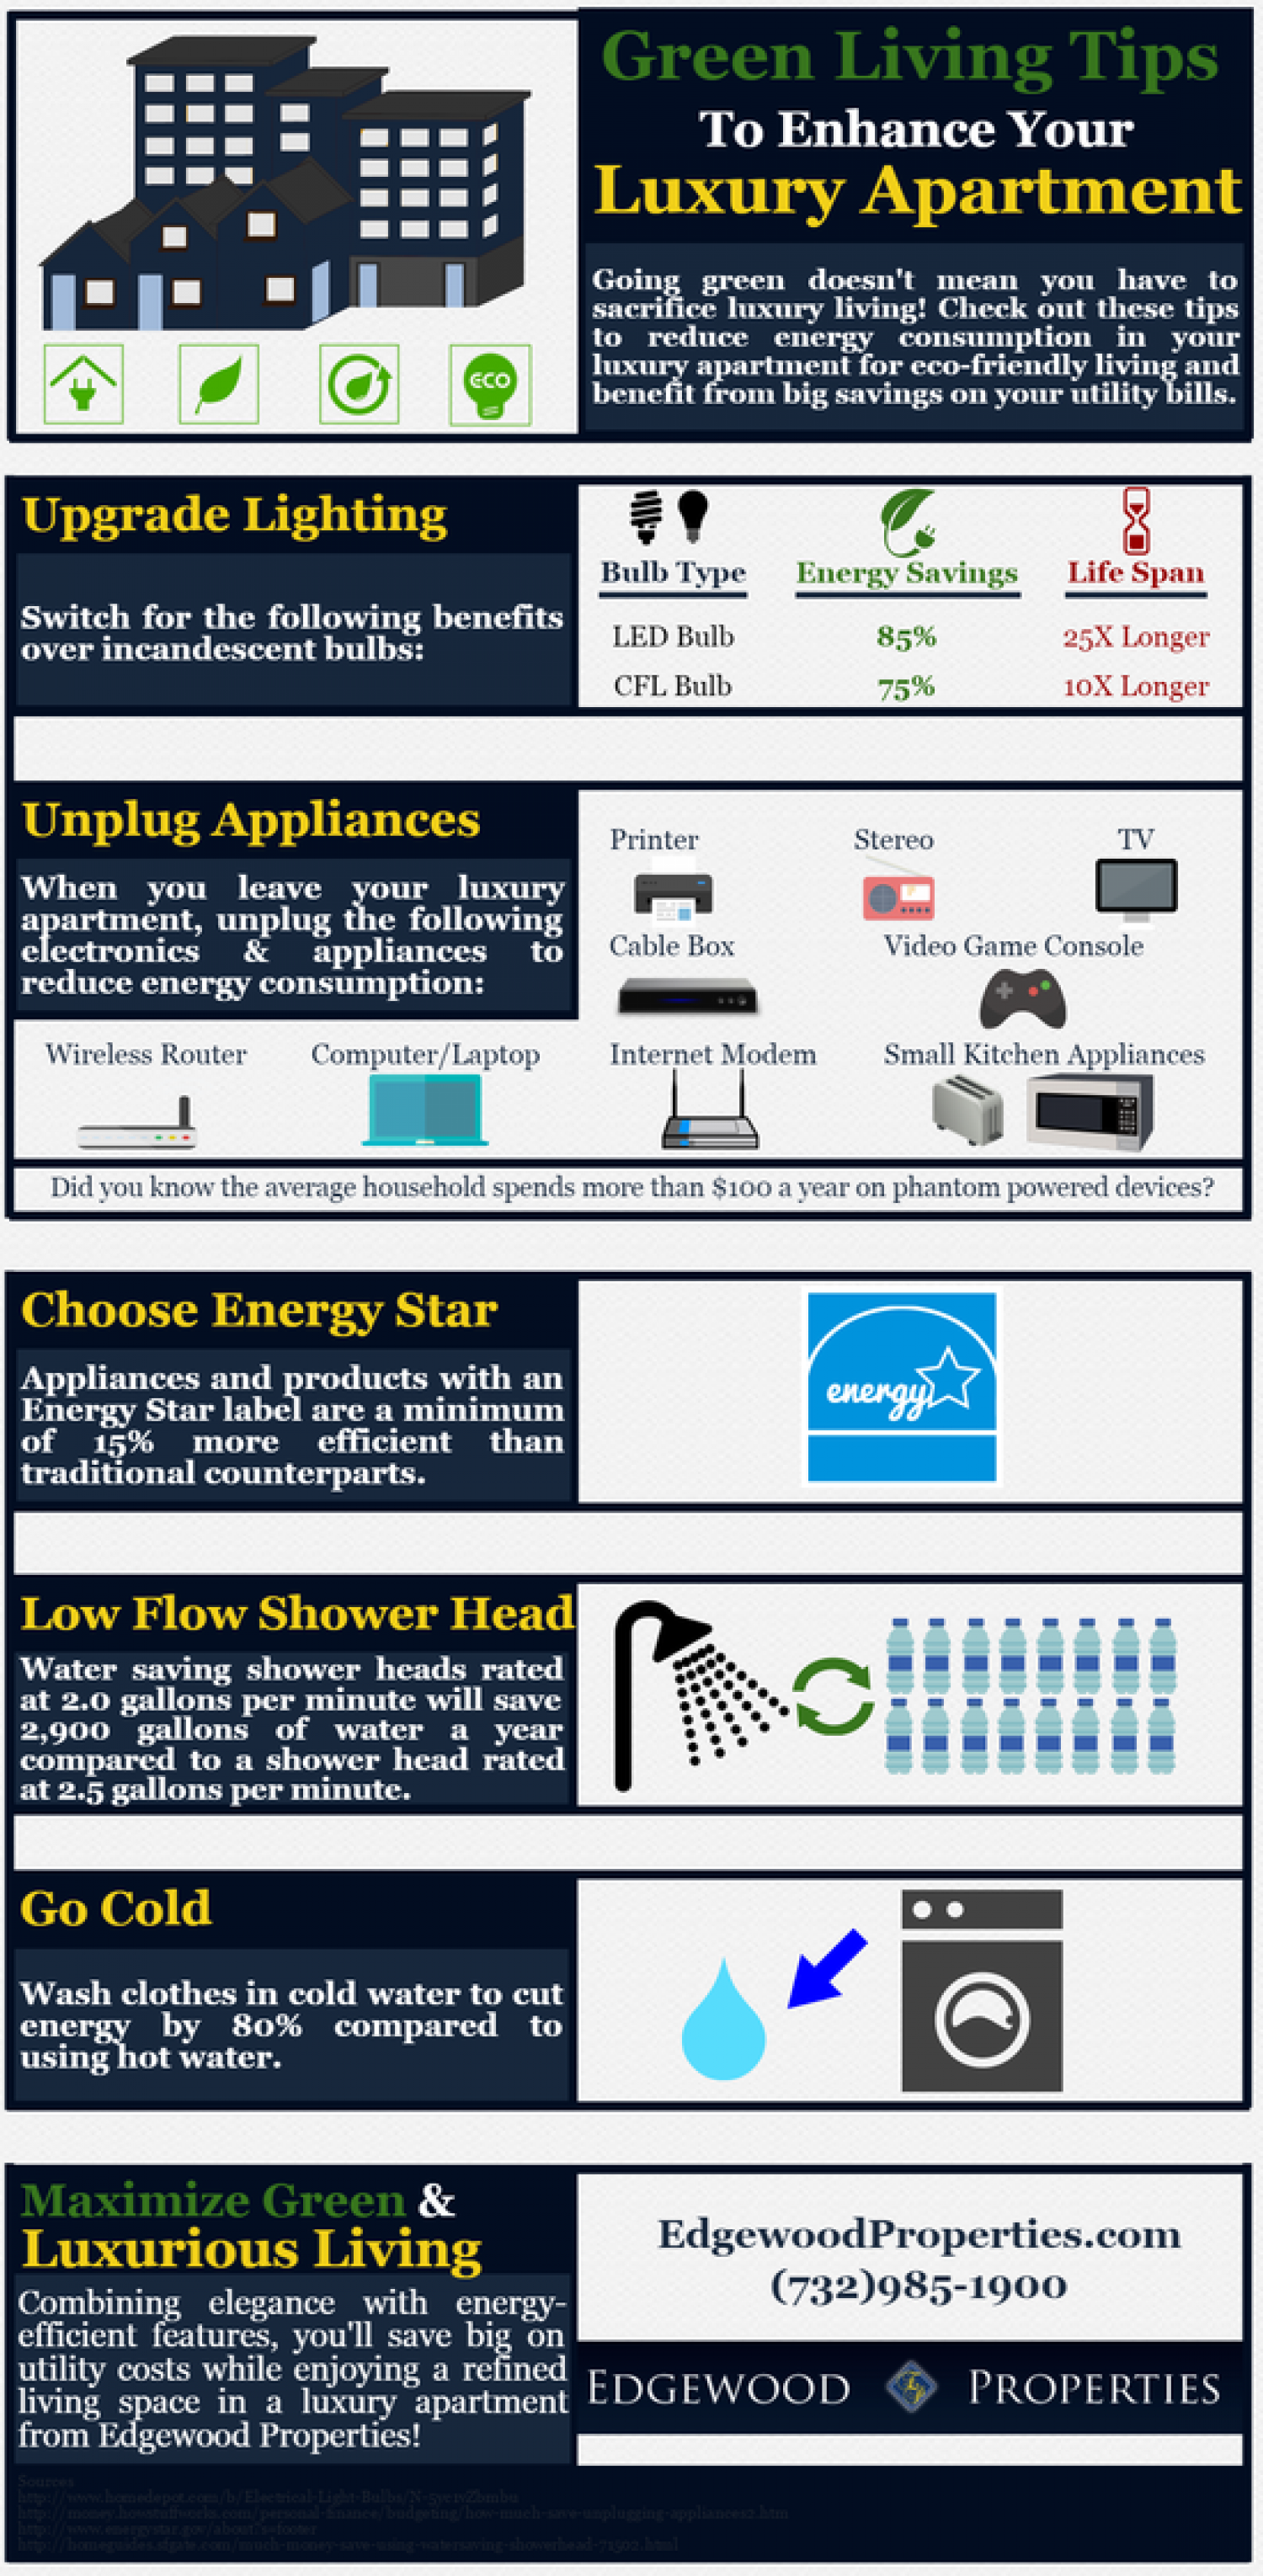 Green Living Tips To Enhance Your Luxury Apartment Infographic